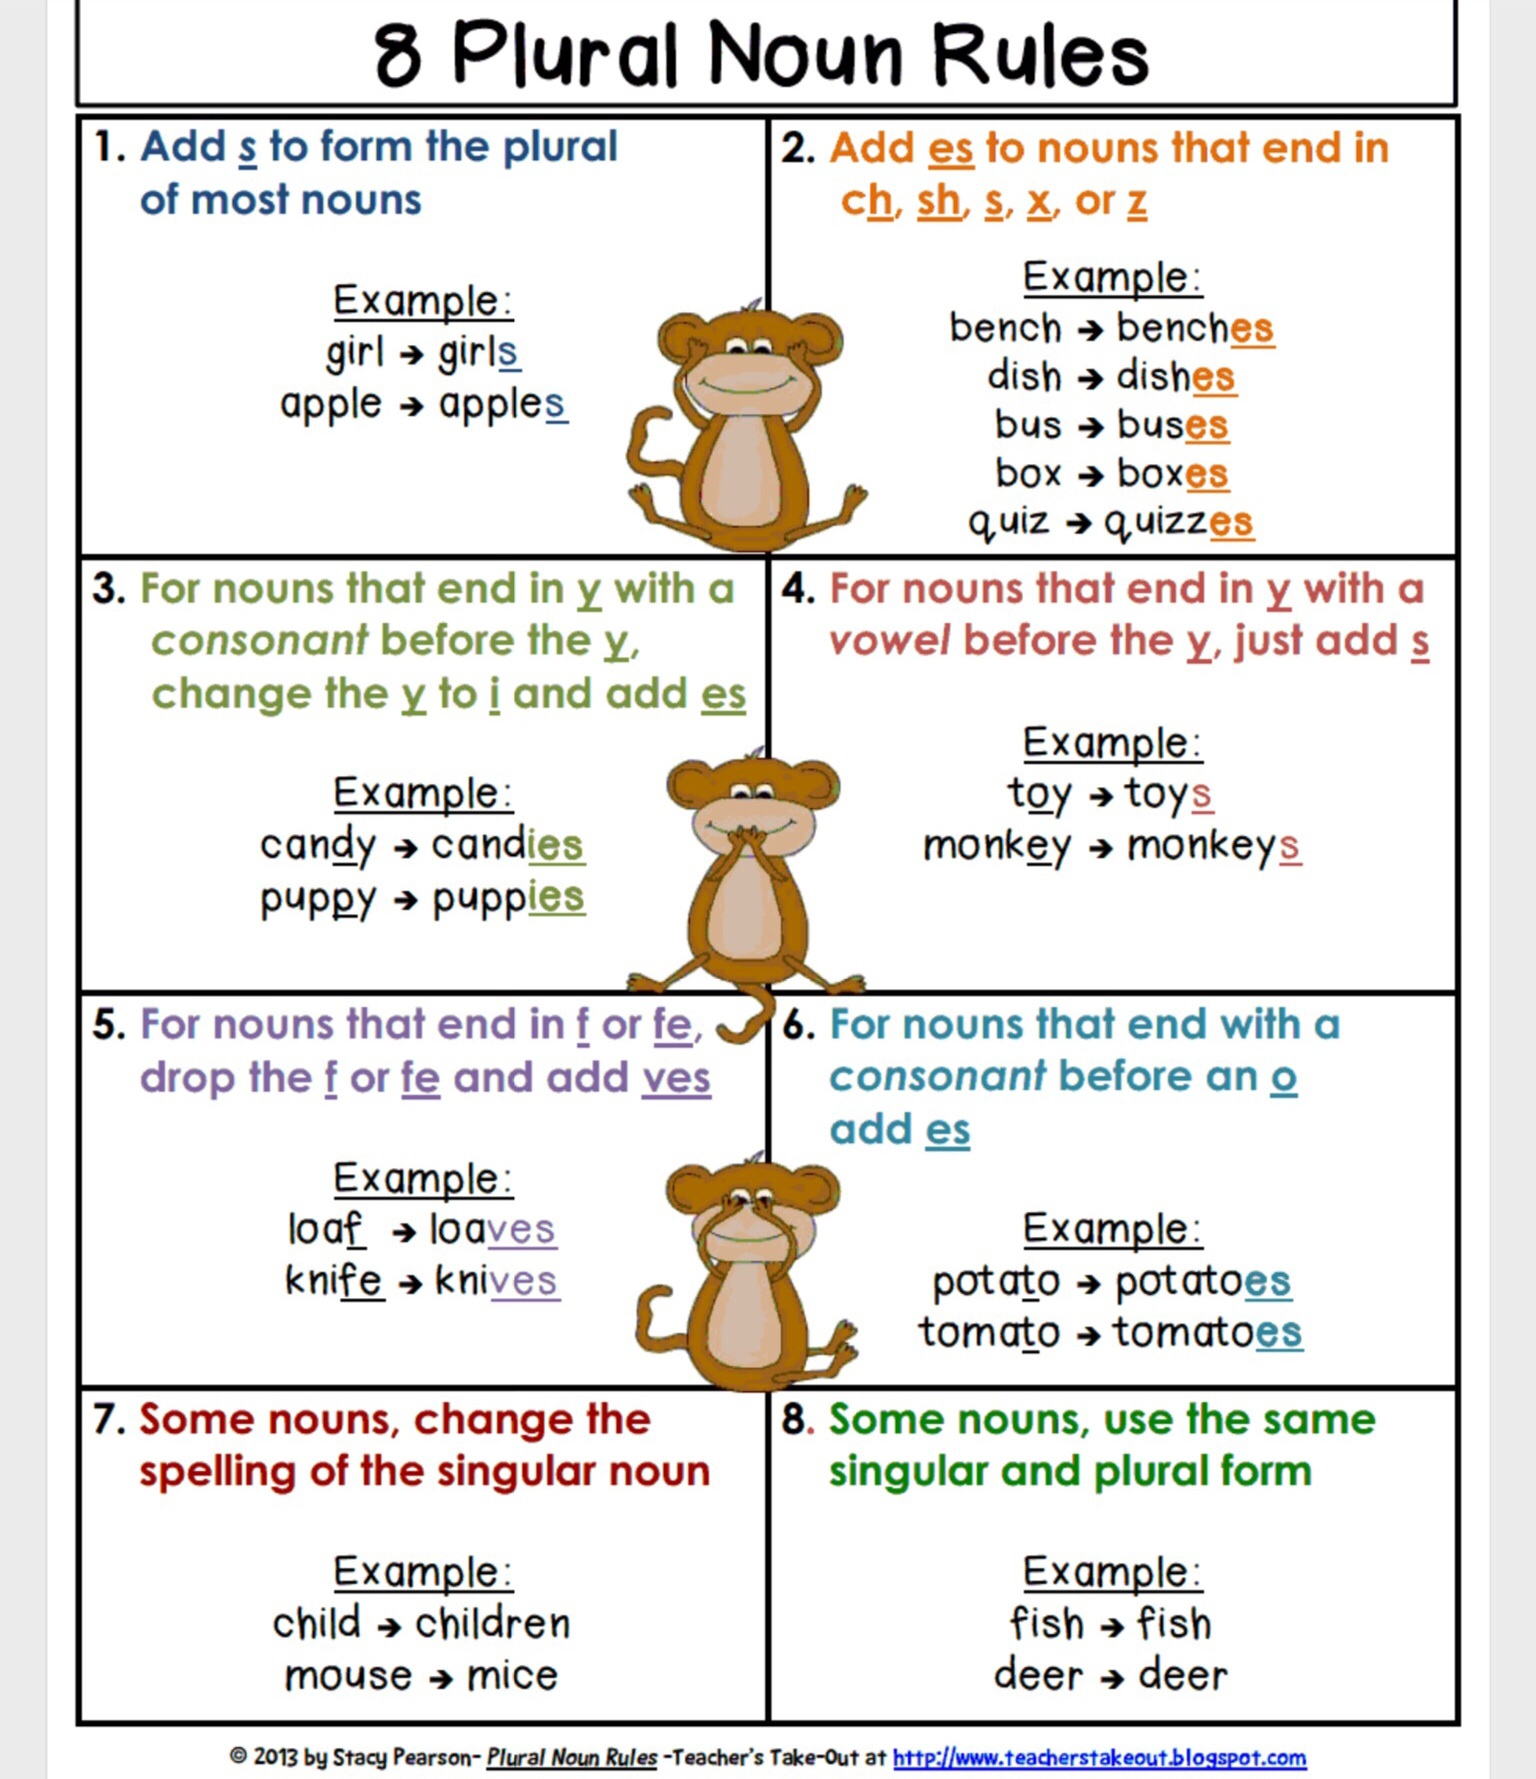 singular plural rules Singular and plural nouns exercises 2 singular means one person or thing plural means more than one learn the rules of making plurals of singular nouns.